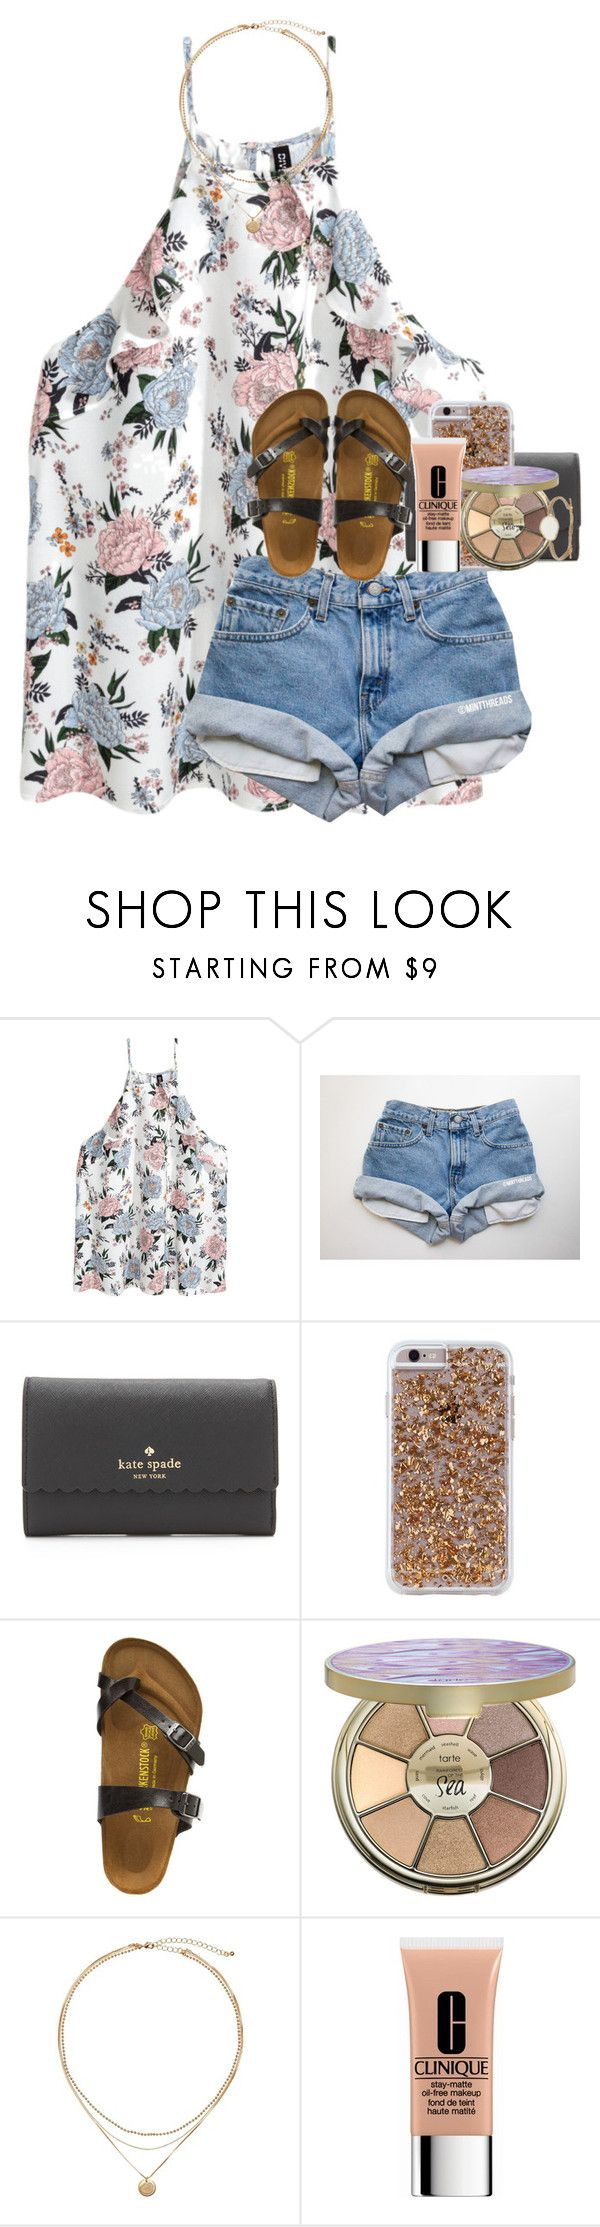 """""""competition tomorrow"""" by kyliegrace ❤ liked on Polyvore featuring Kate Spade, Case-Mate, Birkenstock, tarte, Clinique and Tai"""